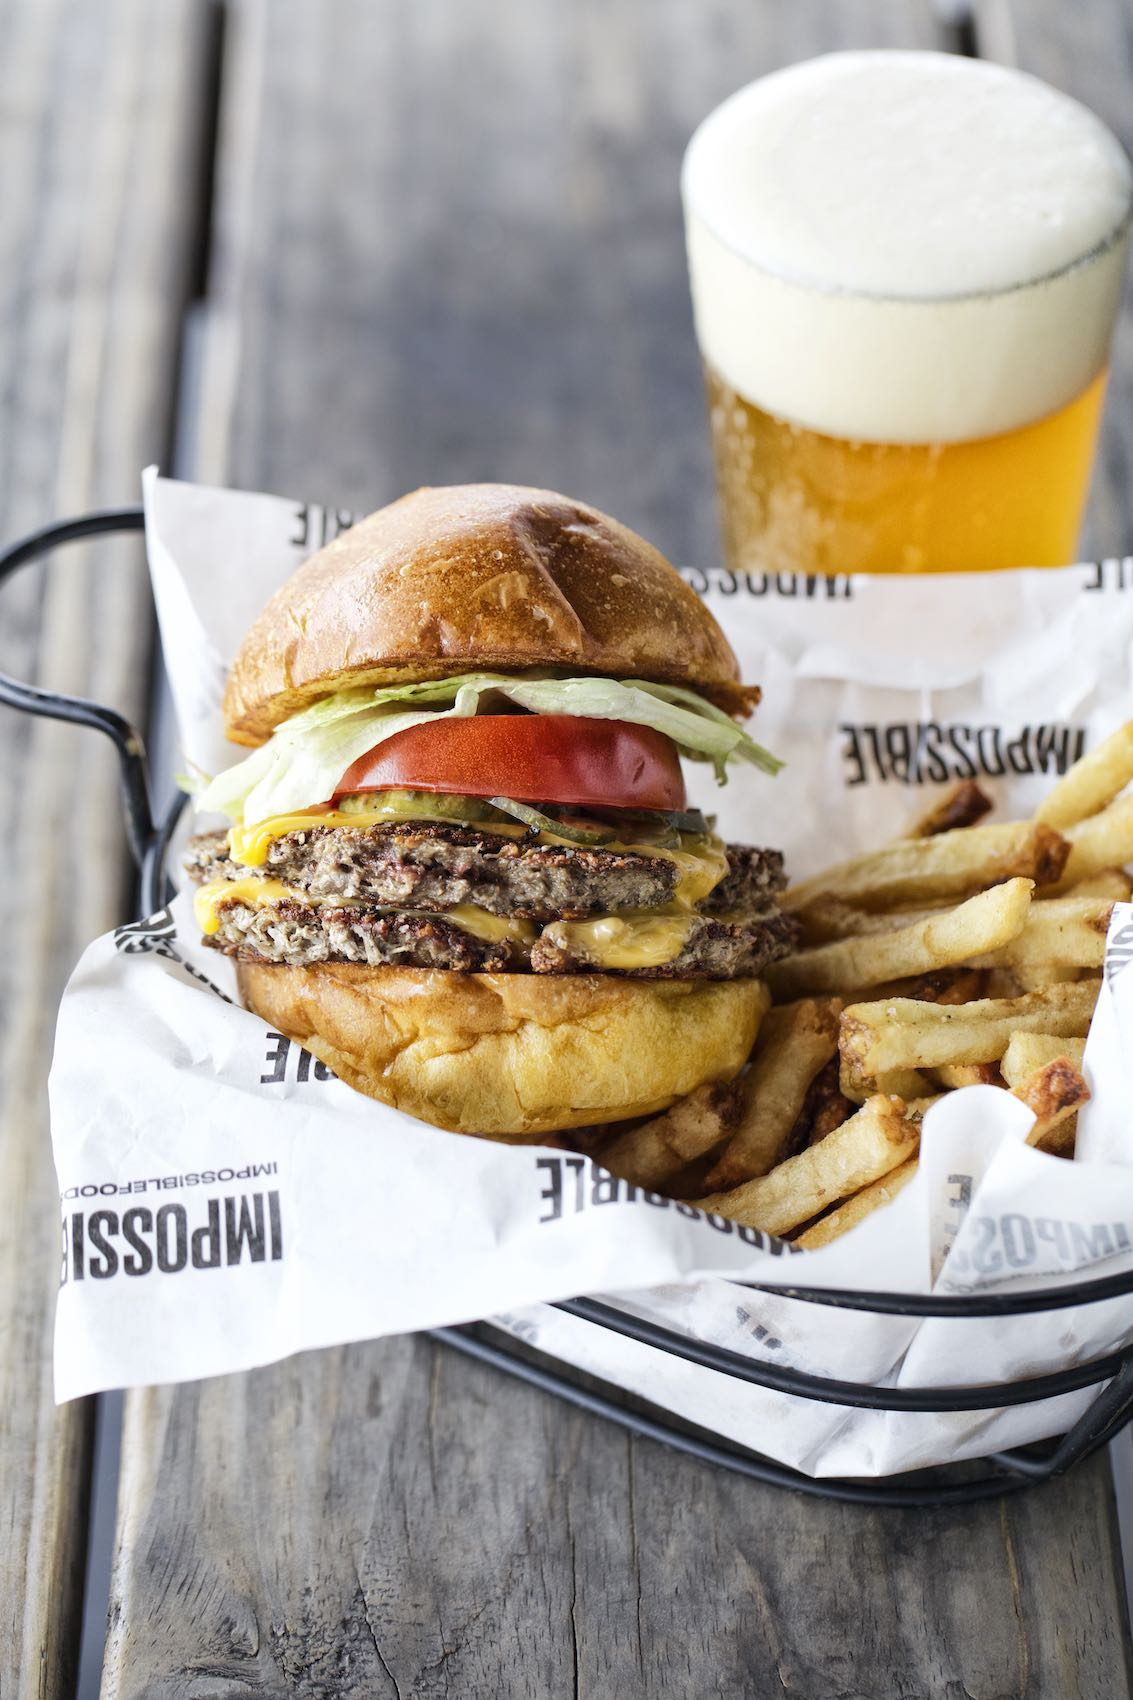 Jody Horton Photography - Basket with a double burger and fries on a wooden picnic table.